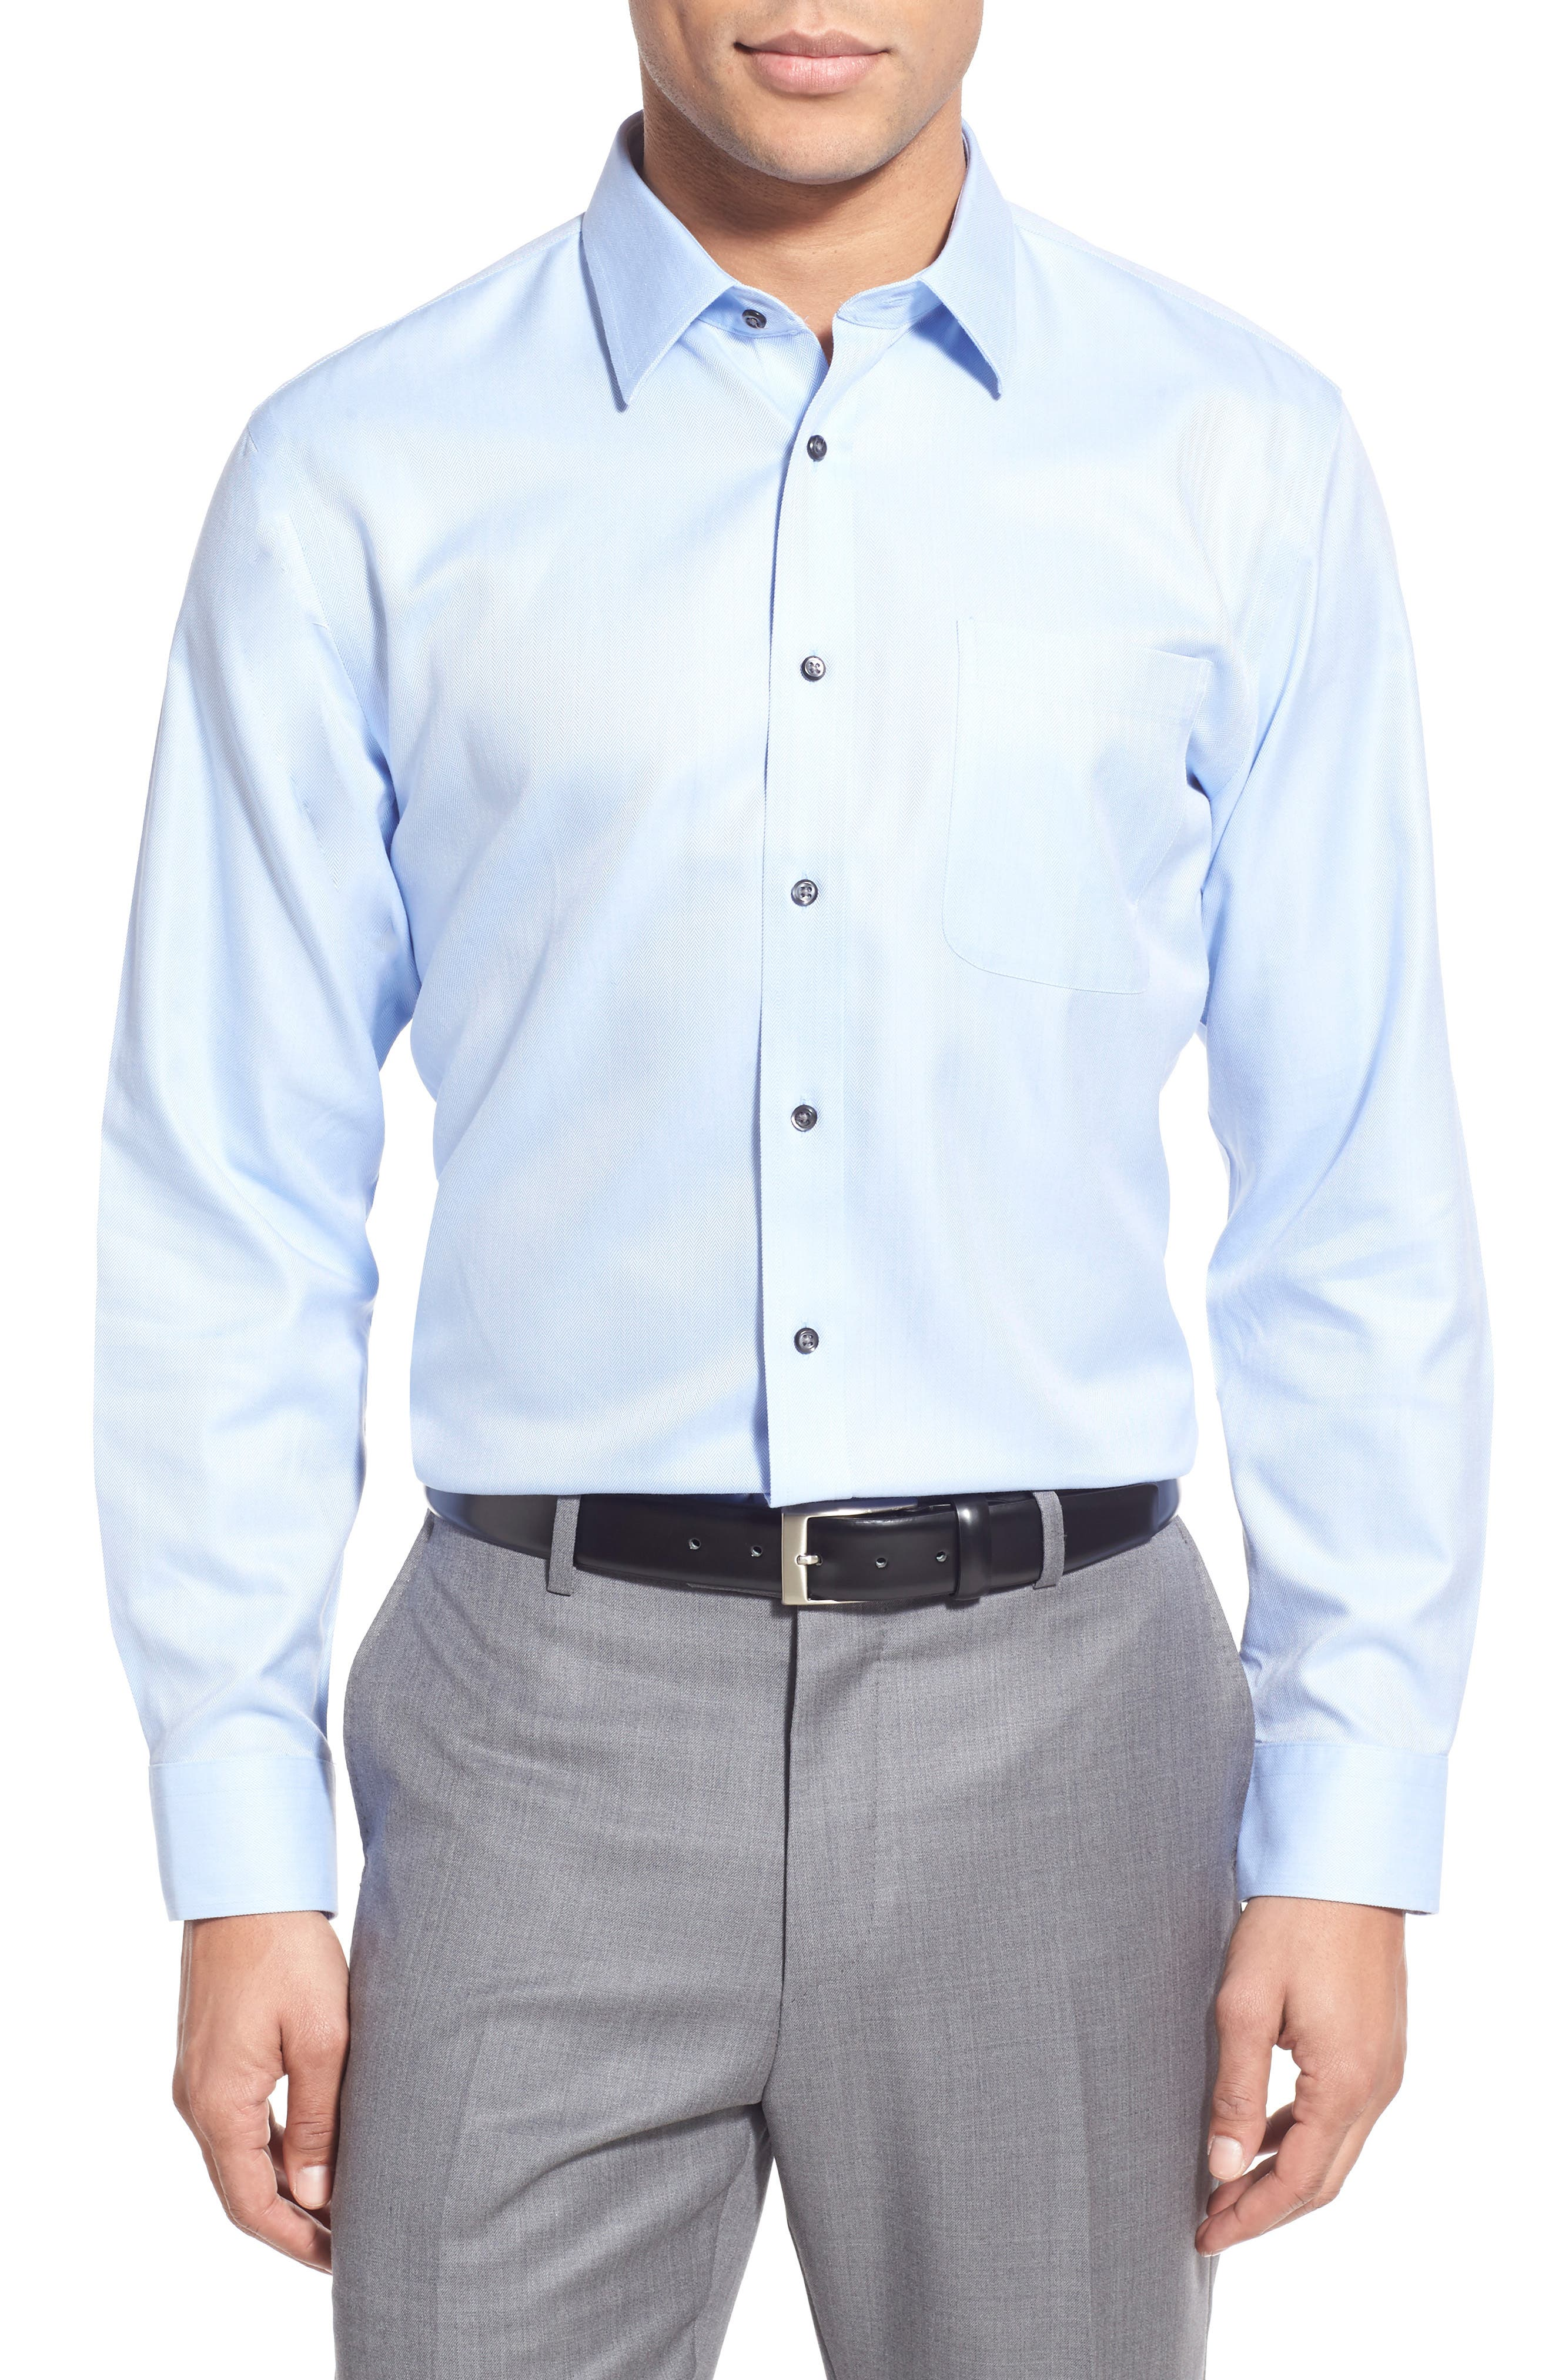 Nordstrom Shop Smartcare(TM) Trim Fit Herringbone Dress Shirt